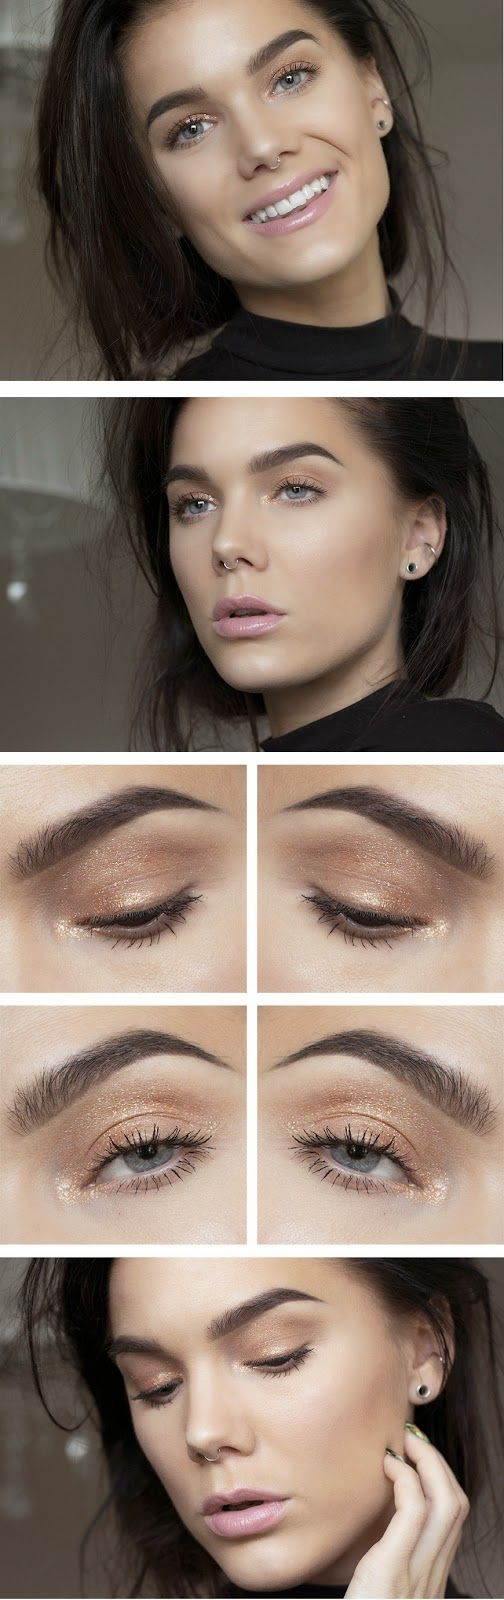 How to Chic: GOLD SEQUIN EYESHADOW MAKE UP BY LINDA HALLBERG